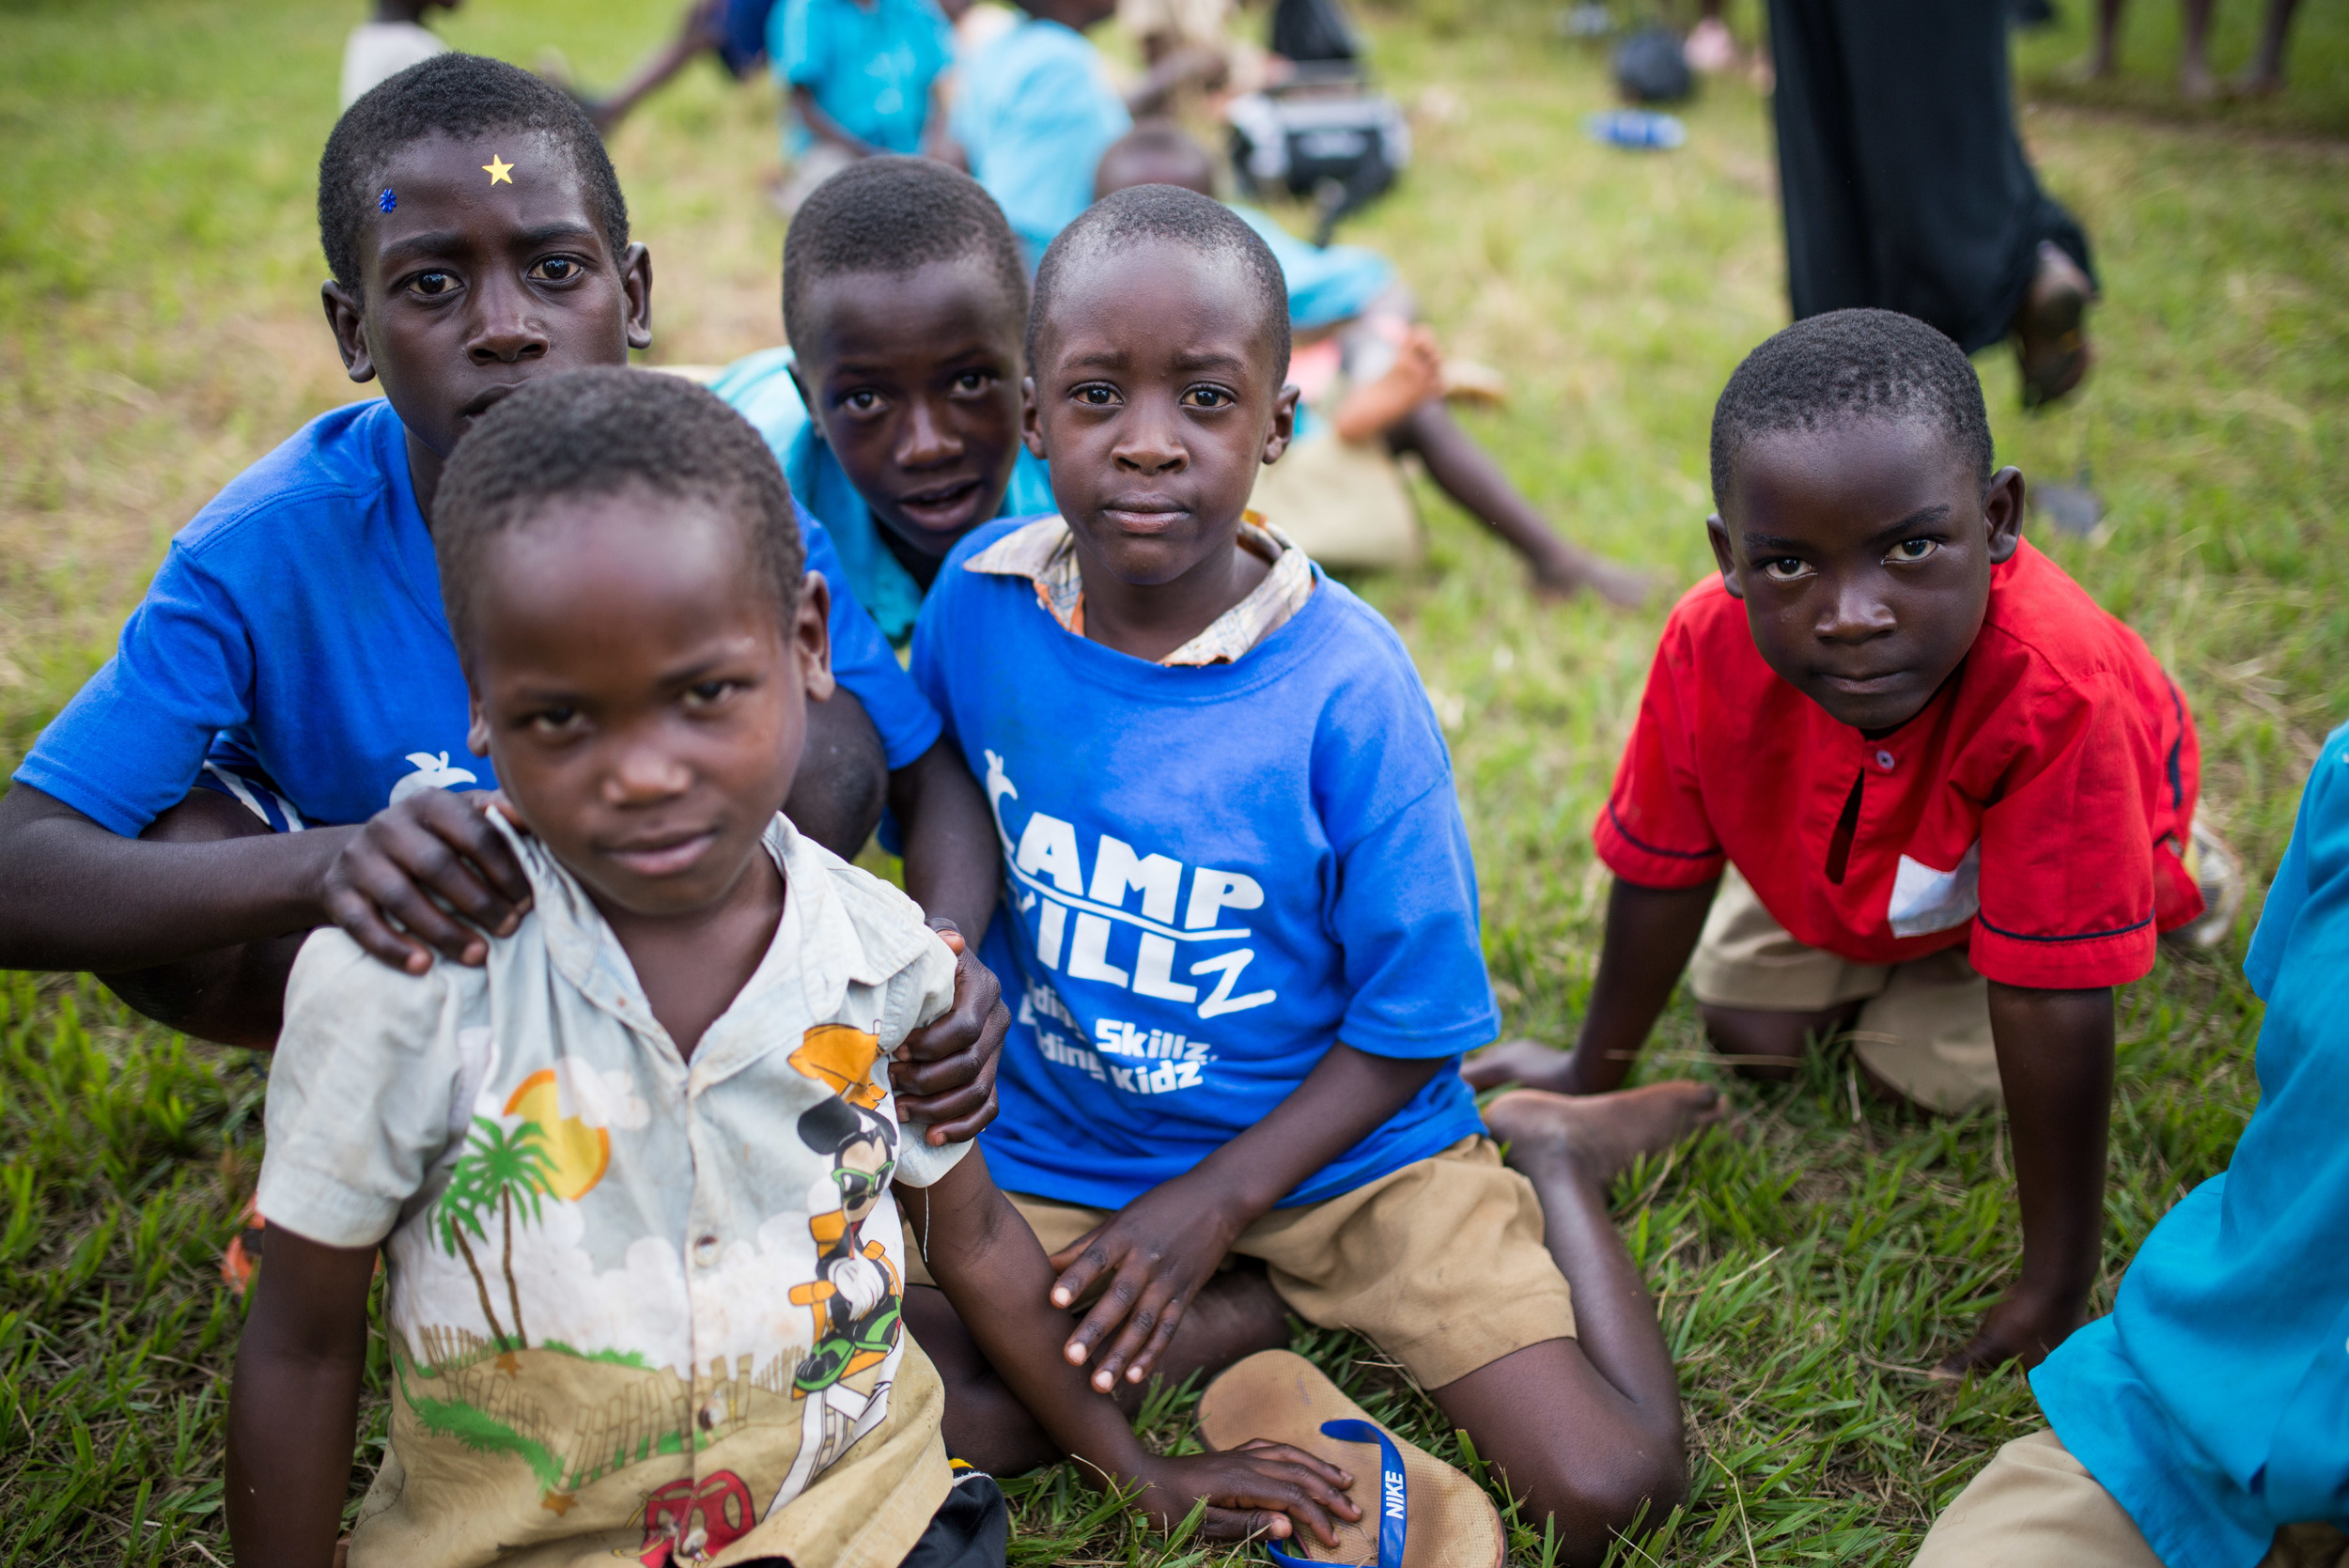 The area surrounding St. John's is extremely impoverished. Most children showed up to camp without shoes. Many of them told us it was the only meal they would eat that day.